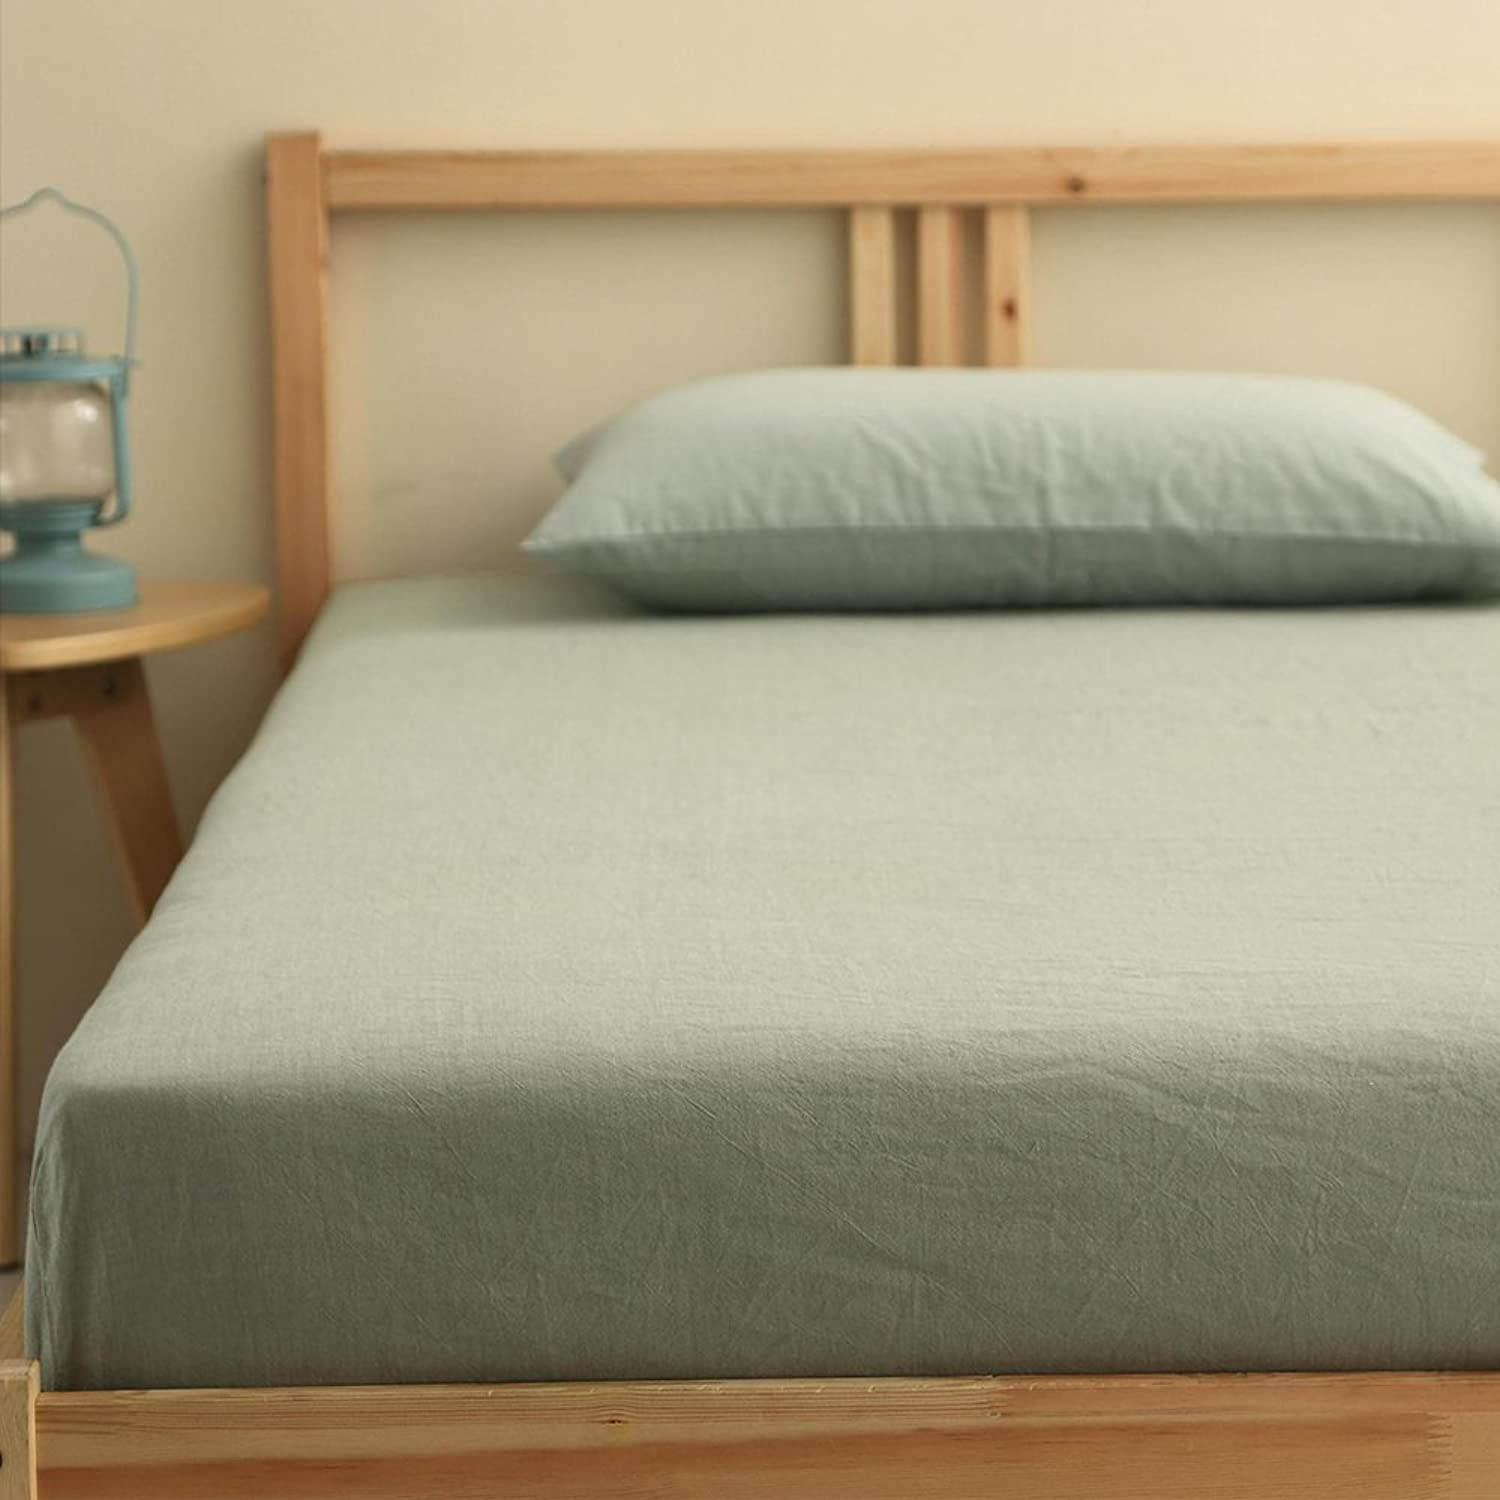 Yazi Flat Sheet (Green Solid, King) 100% Cotton Premium Quality Combed Cotton Long Staple Fiber 95Inches x 98Inches